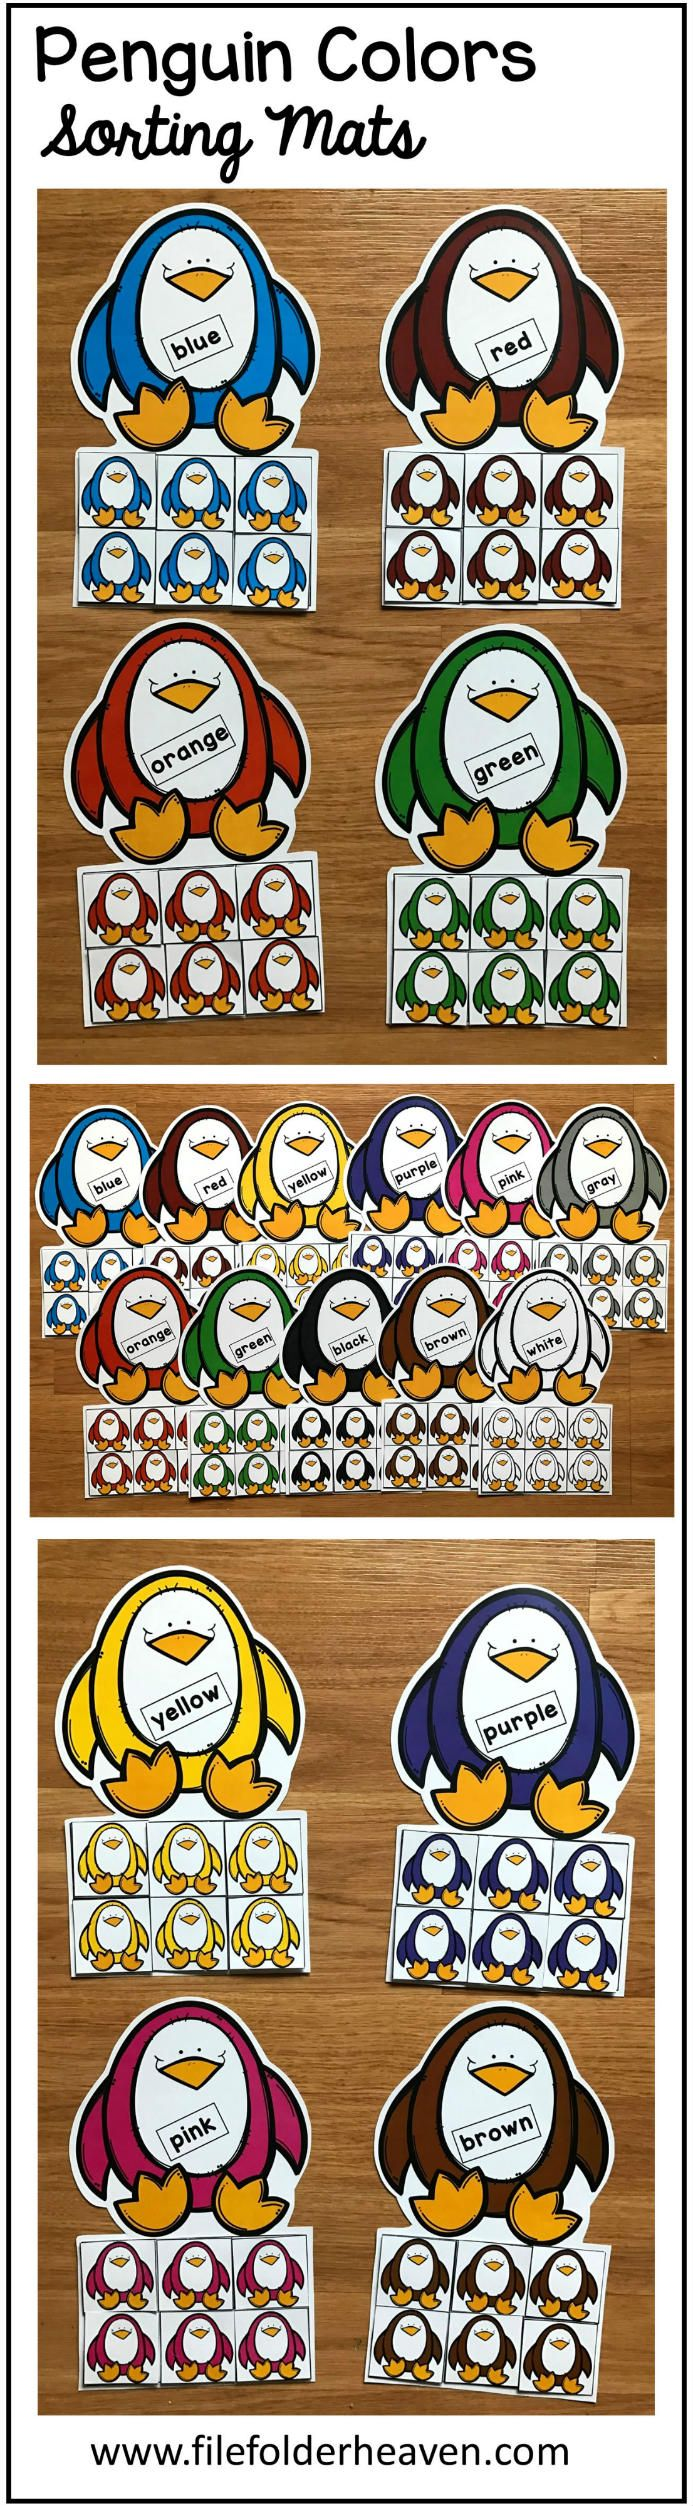 These Penguins Color Sorting Mats include 11 unique sorting mats that focus on sorting penguins by color.  In a center or independent work station, students sort colored penguins into the penguin mat that is the same color.  Colored mats included are:  red blue green orange yellow pink purple brown gray black white